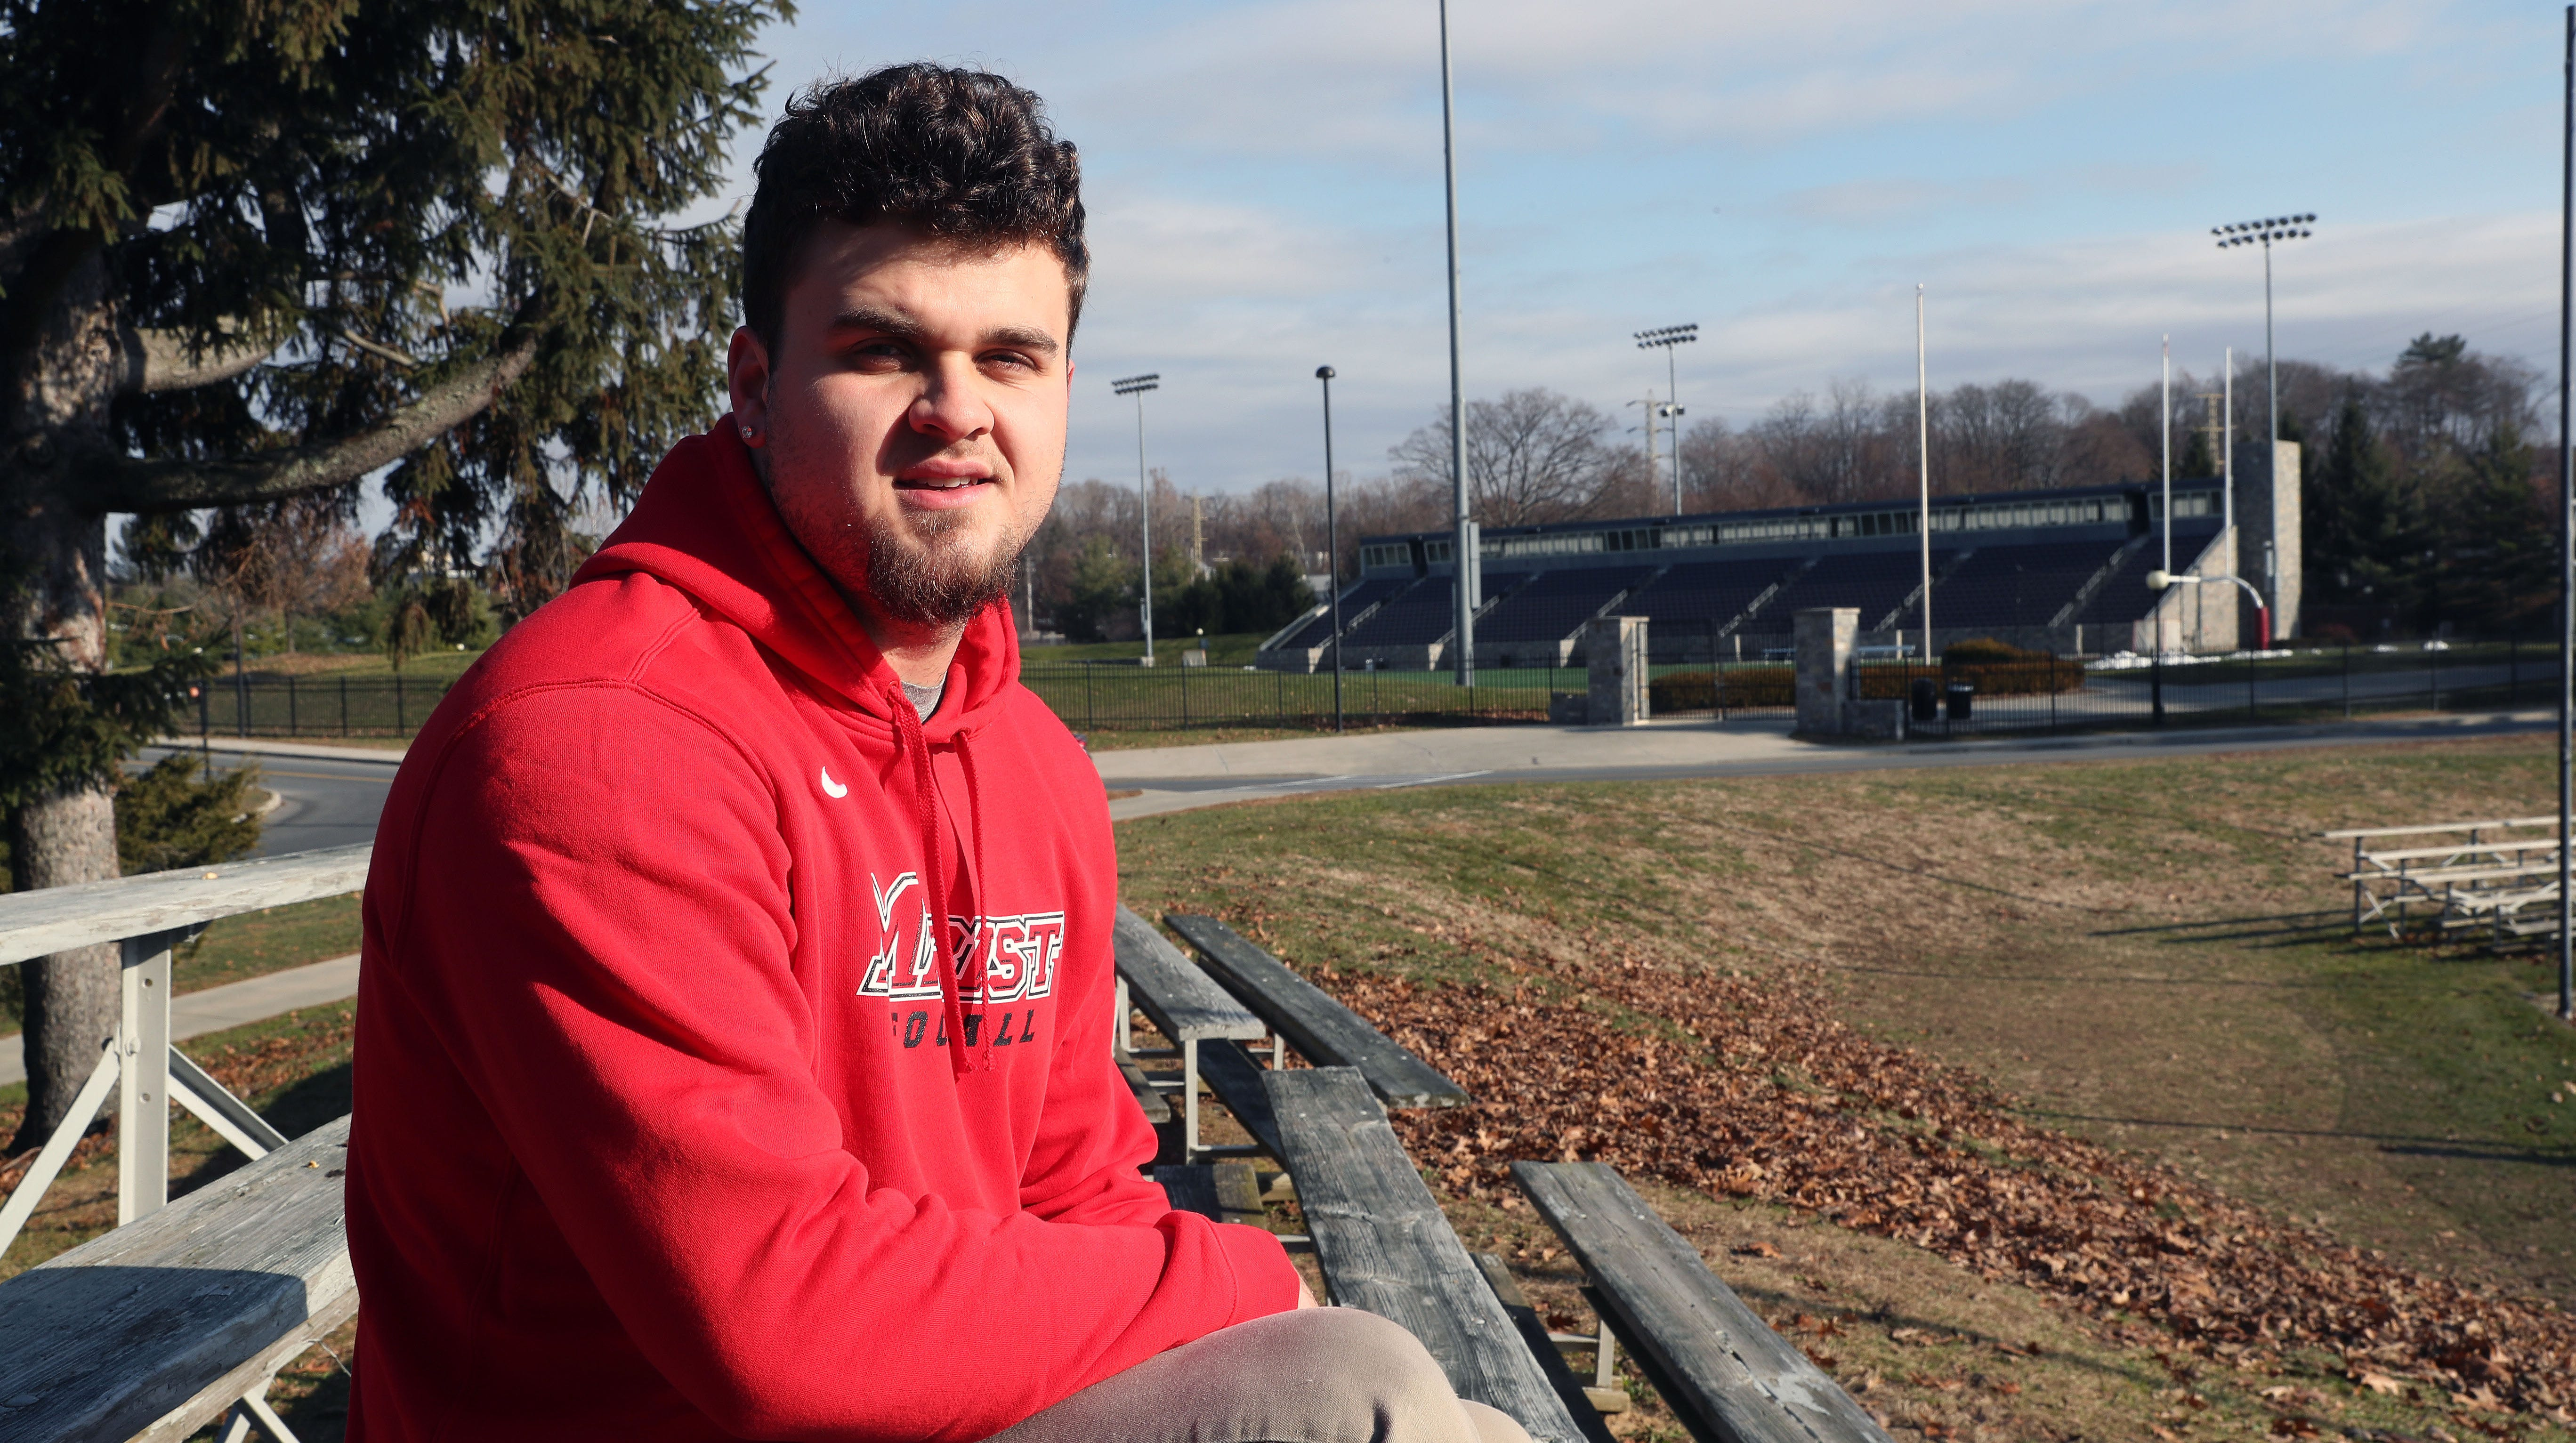 """Former Ardsley standout Julian McGarvey talks about adjusting to college life and about the upcoming anniversary of """"The Shot""""  while sitting outside the football stadium at Marist College in Poughkeepsie Dec. 8, 2018."""